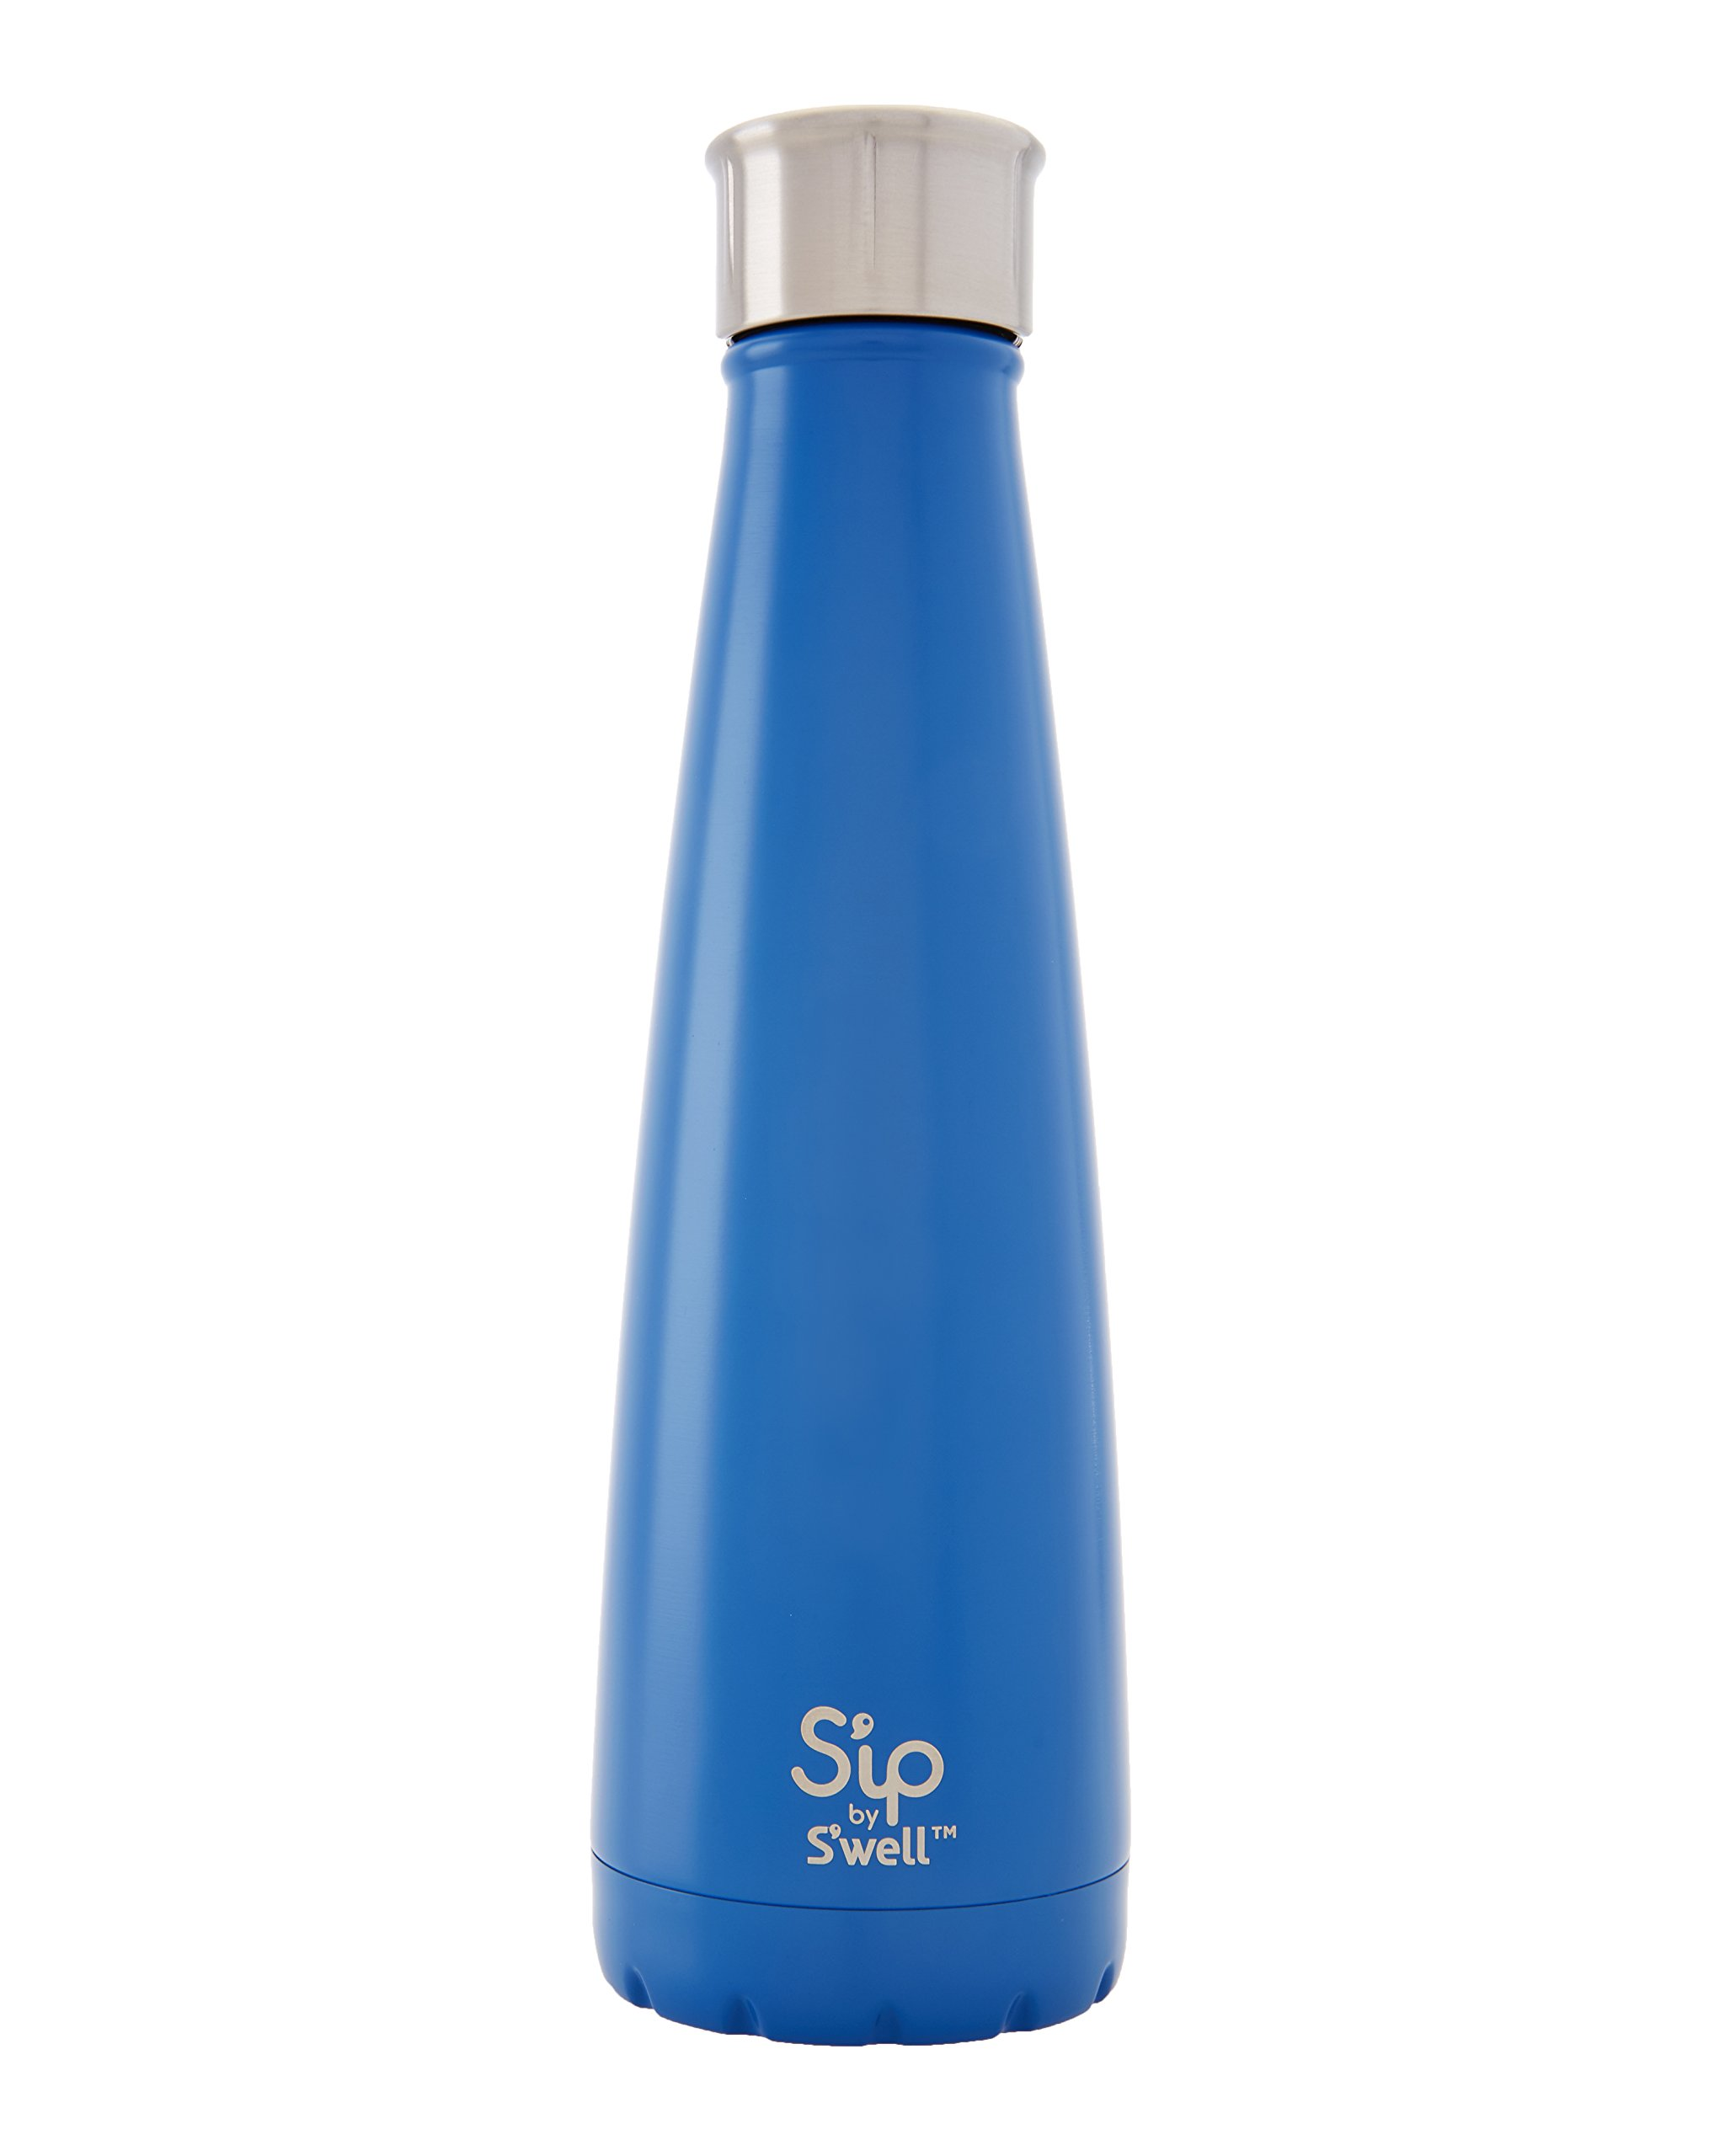 S'ip by S'well Vacuum Insulated Stainless Steel Water Bottle, Double Wall, 15 oz, Jersey Blue